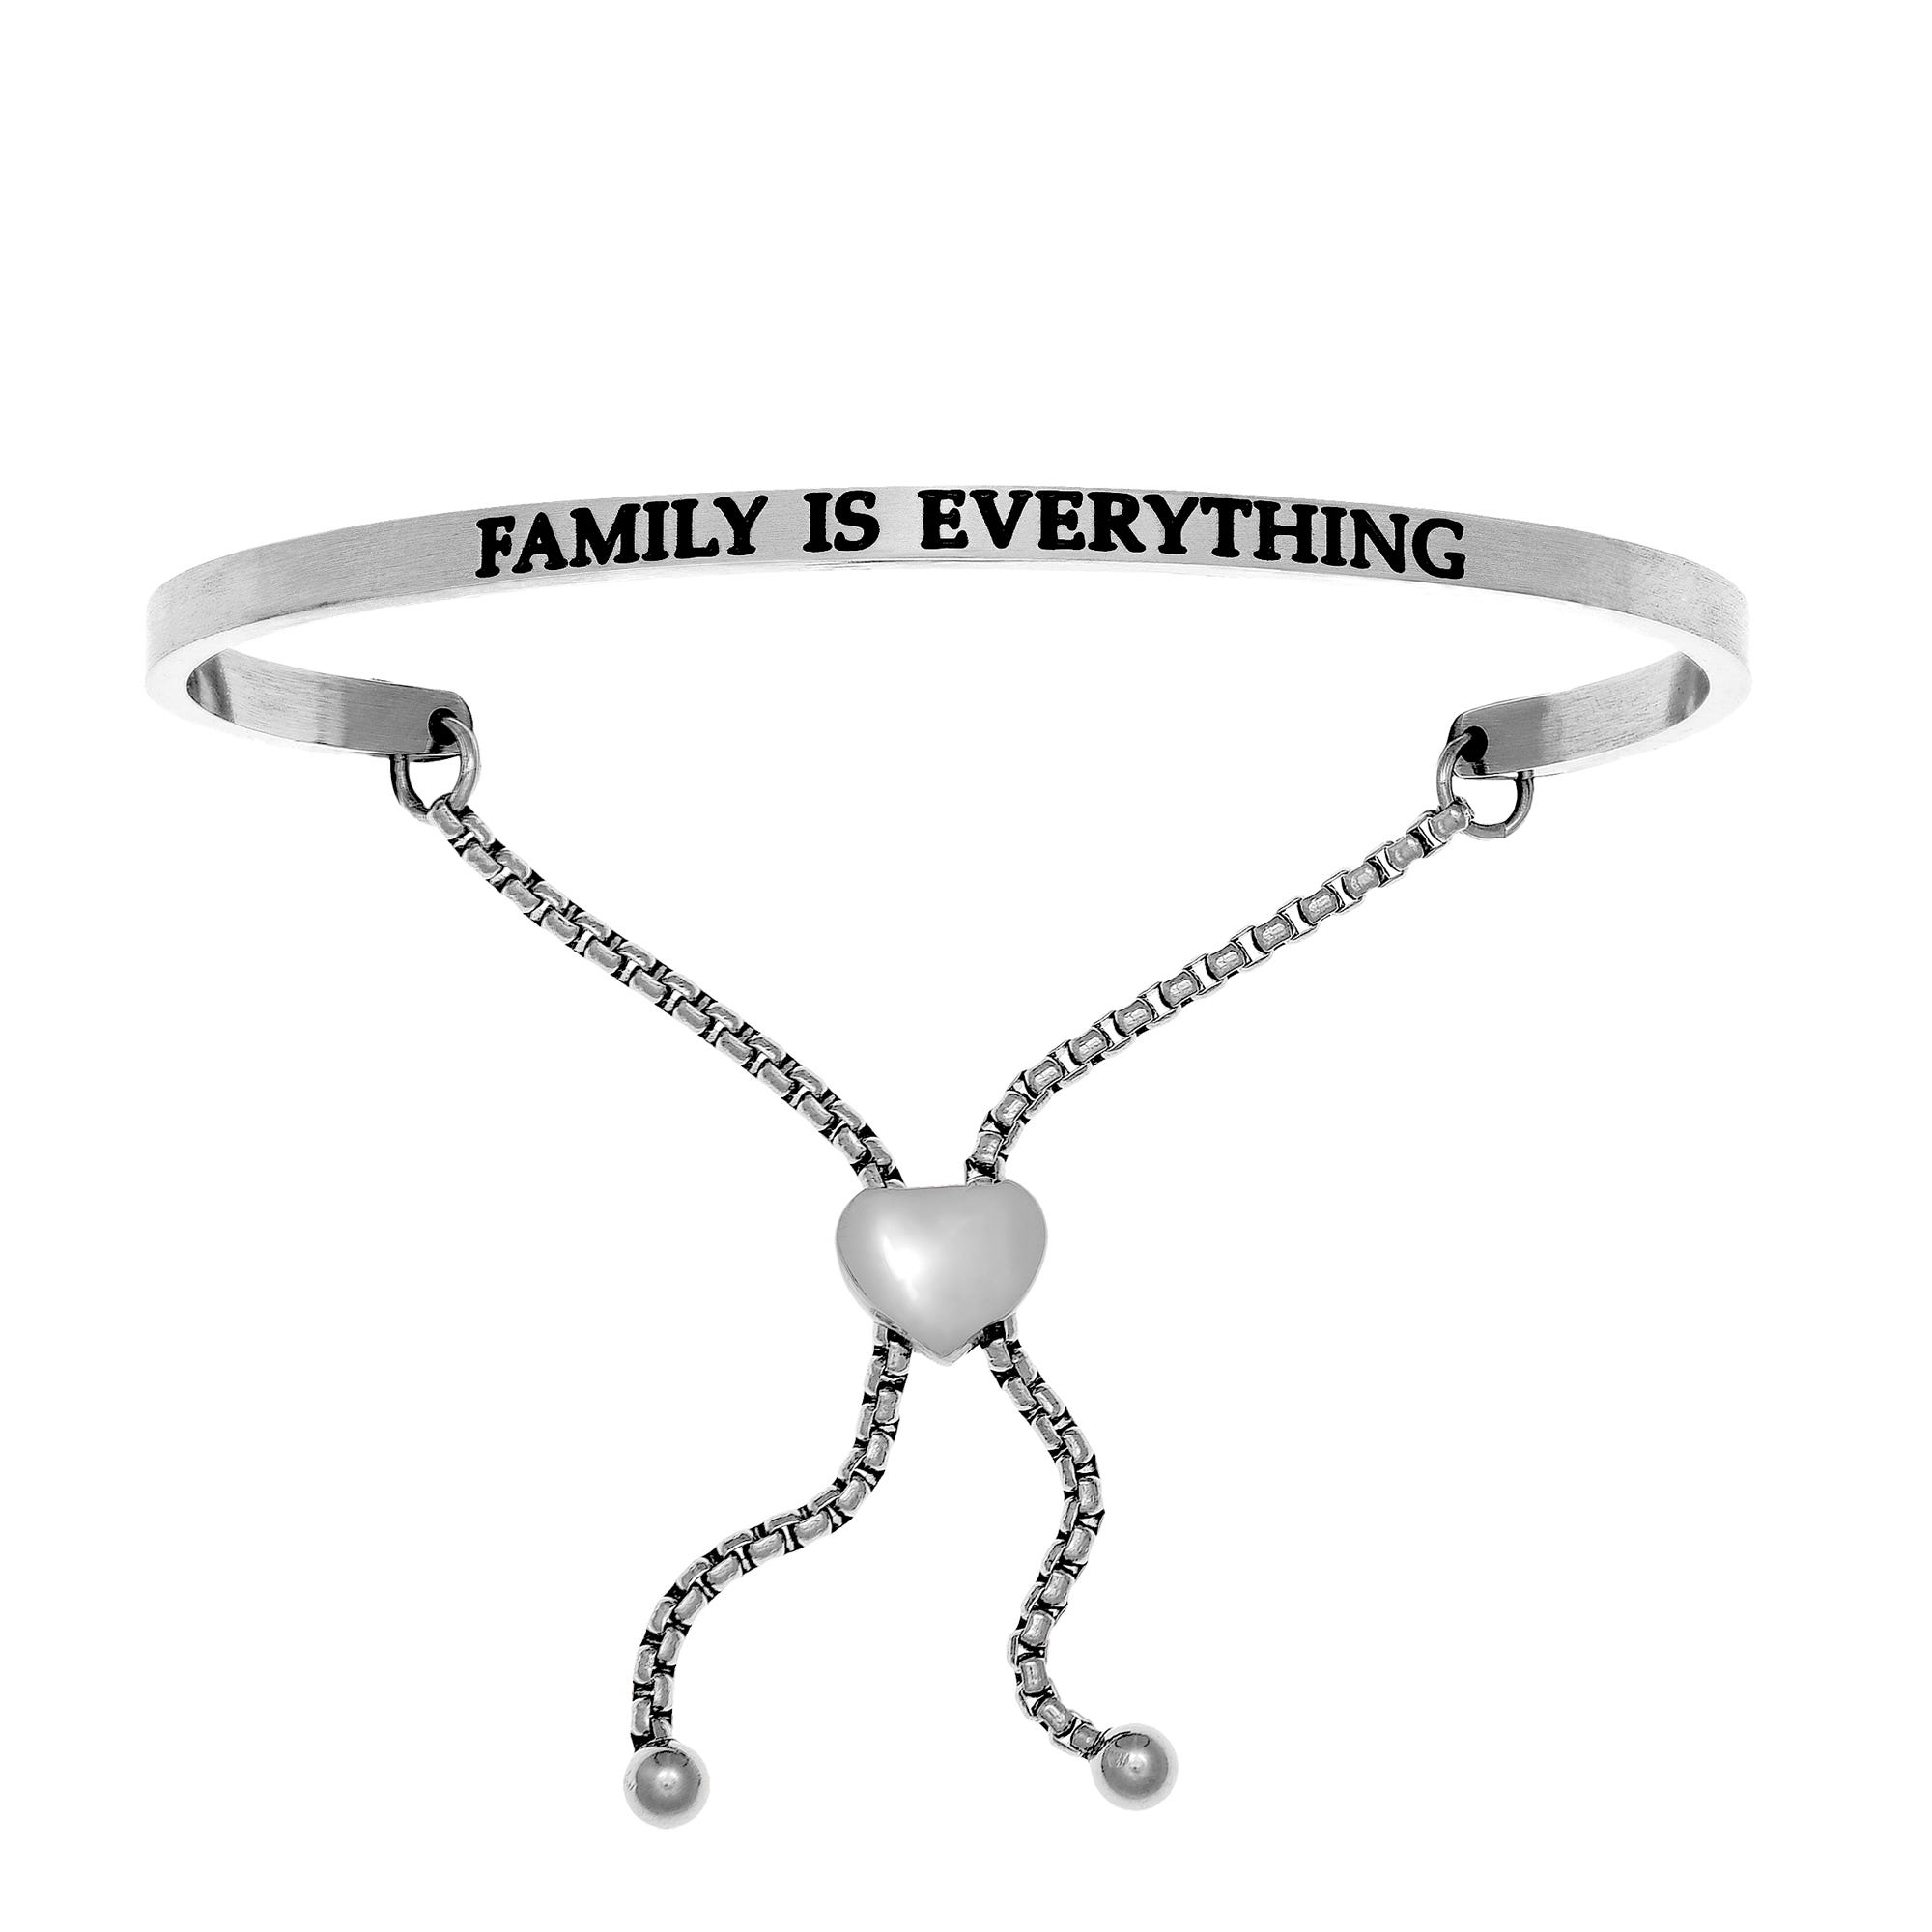 Family Is Everything. Intuitions Bolo Bracelet in White Stainless Steel